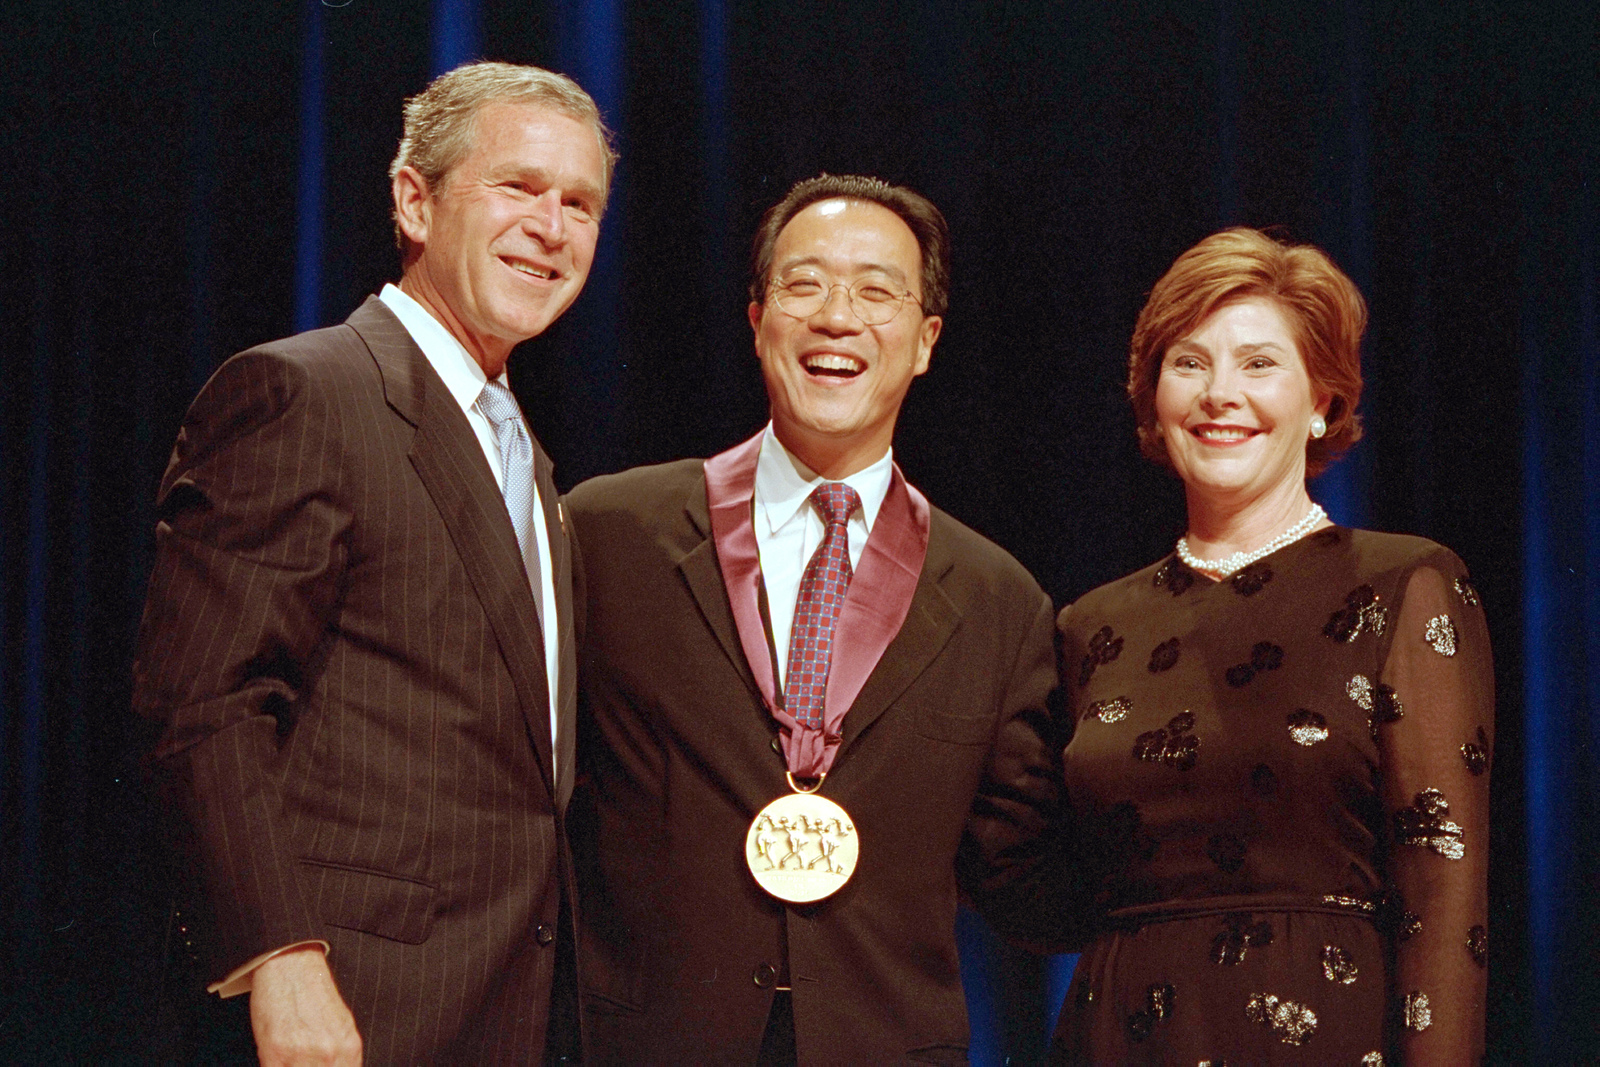 President Bush and Laura Bush Attend the Arts and Humanities Awards